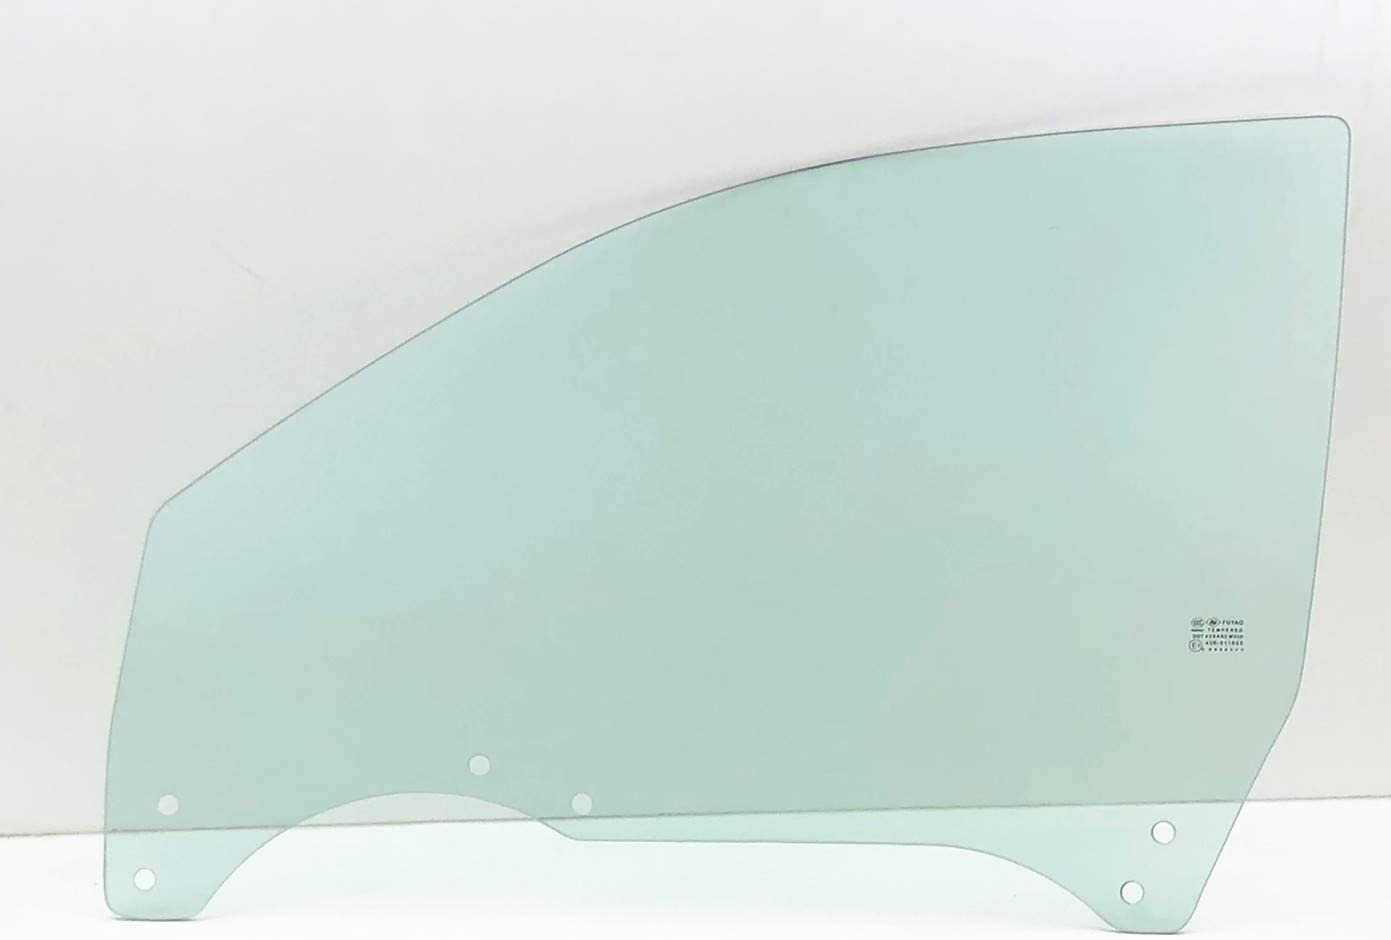 NAGD Compatible with 2000-2004 Subaru Legacy /& Outback 4 Door Sedan//Wagon Driver Side Left Front Door Window Glass